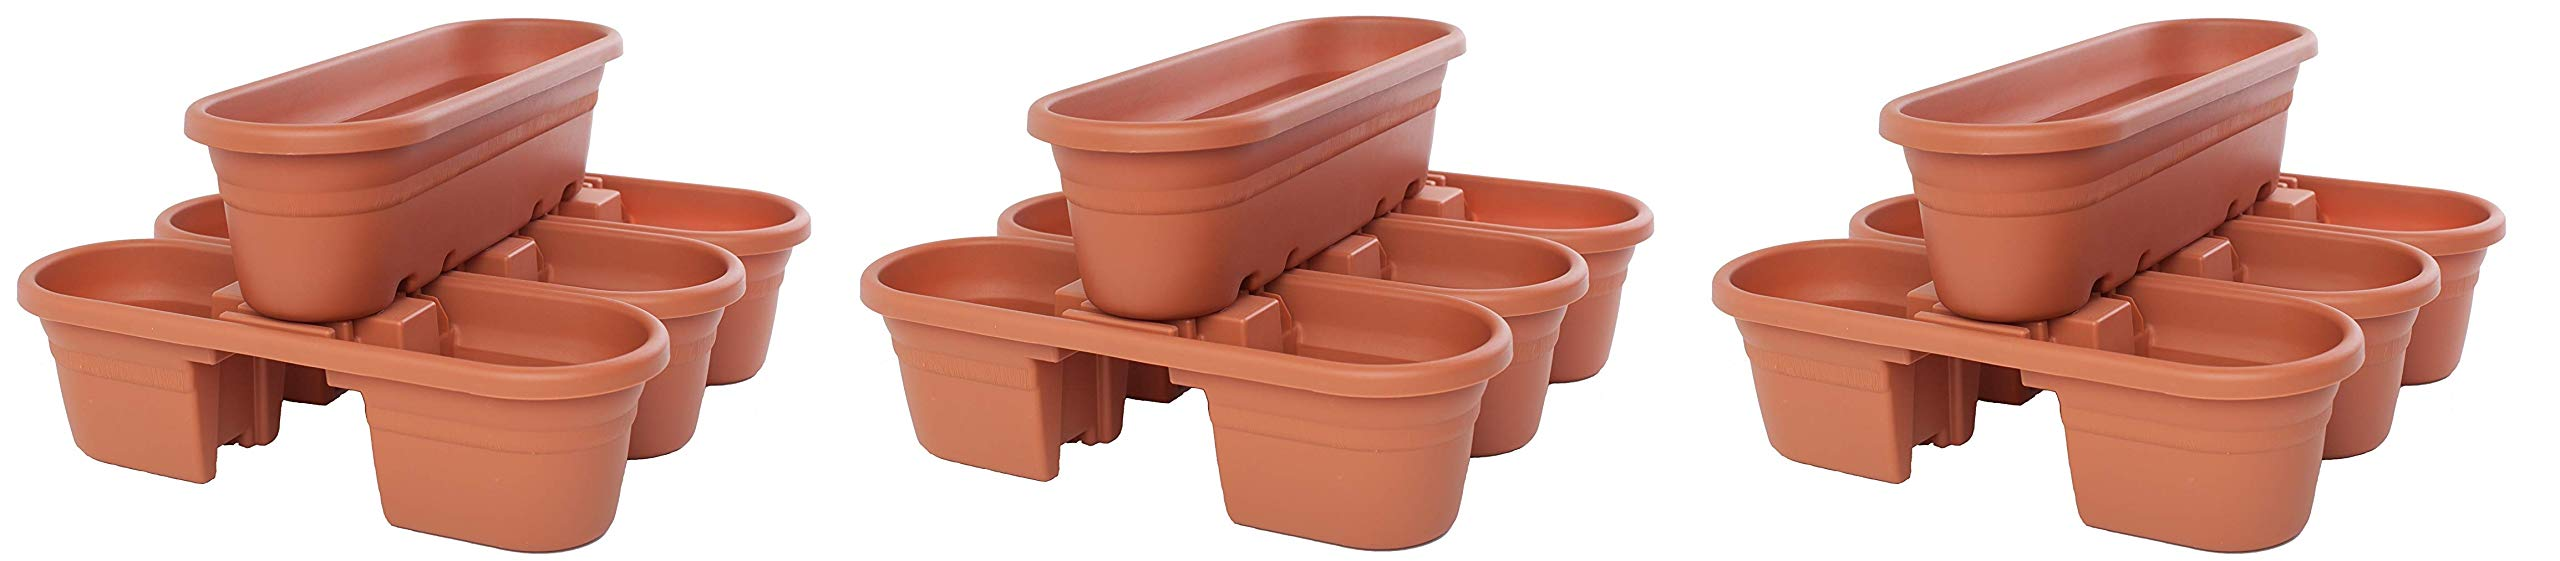 Bloem MRP421-46 Milano Rail Planters, Terra Cotta, 21'' (4-Piece) (Pack of 3)